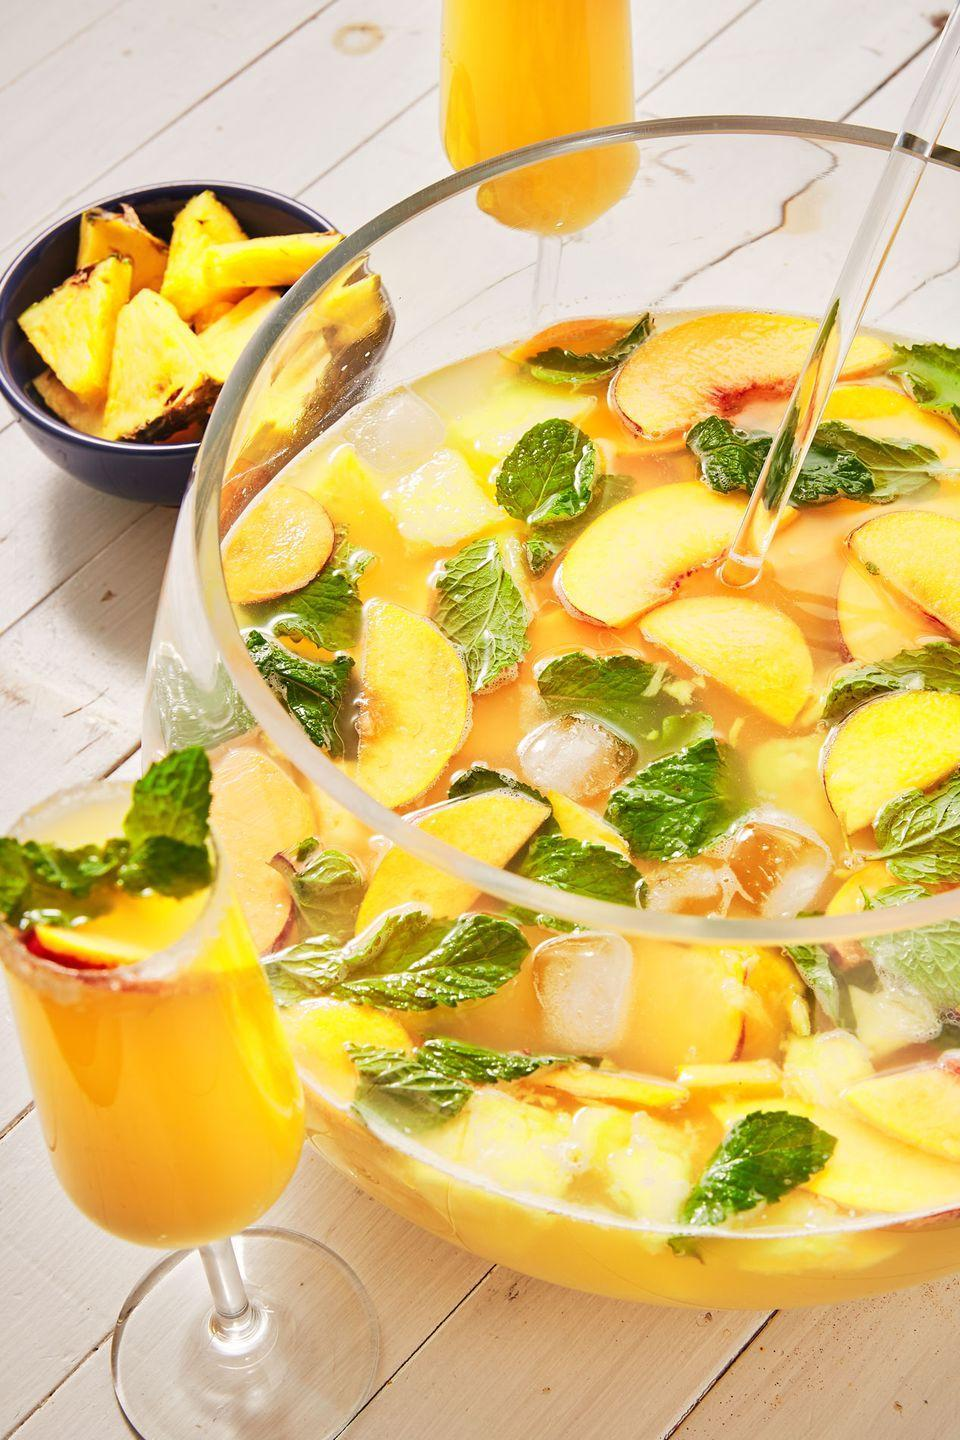 """<p>Has there ever been a more perfect brunch drink?</p><p>Get the recipe from <a href=""""https://www.delish.com/cooking/recipe-ideas/recipes/a54413/prosecco-punch-recipe/"""" rel=""""nofollow noopener"""" target=""""_blank"""" data-ylk=""""slk:Delish"""" class=""""link rapid-noclick-resp"""">Delish</a>.</p>"""